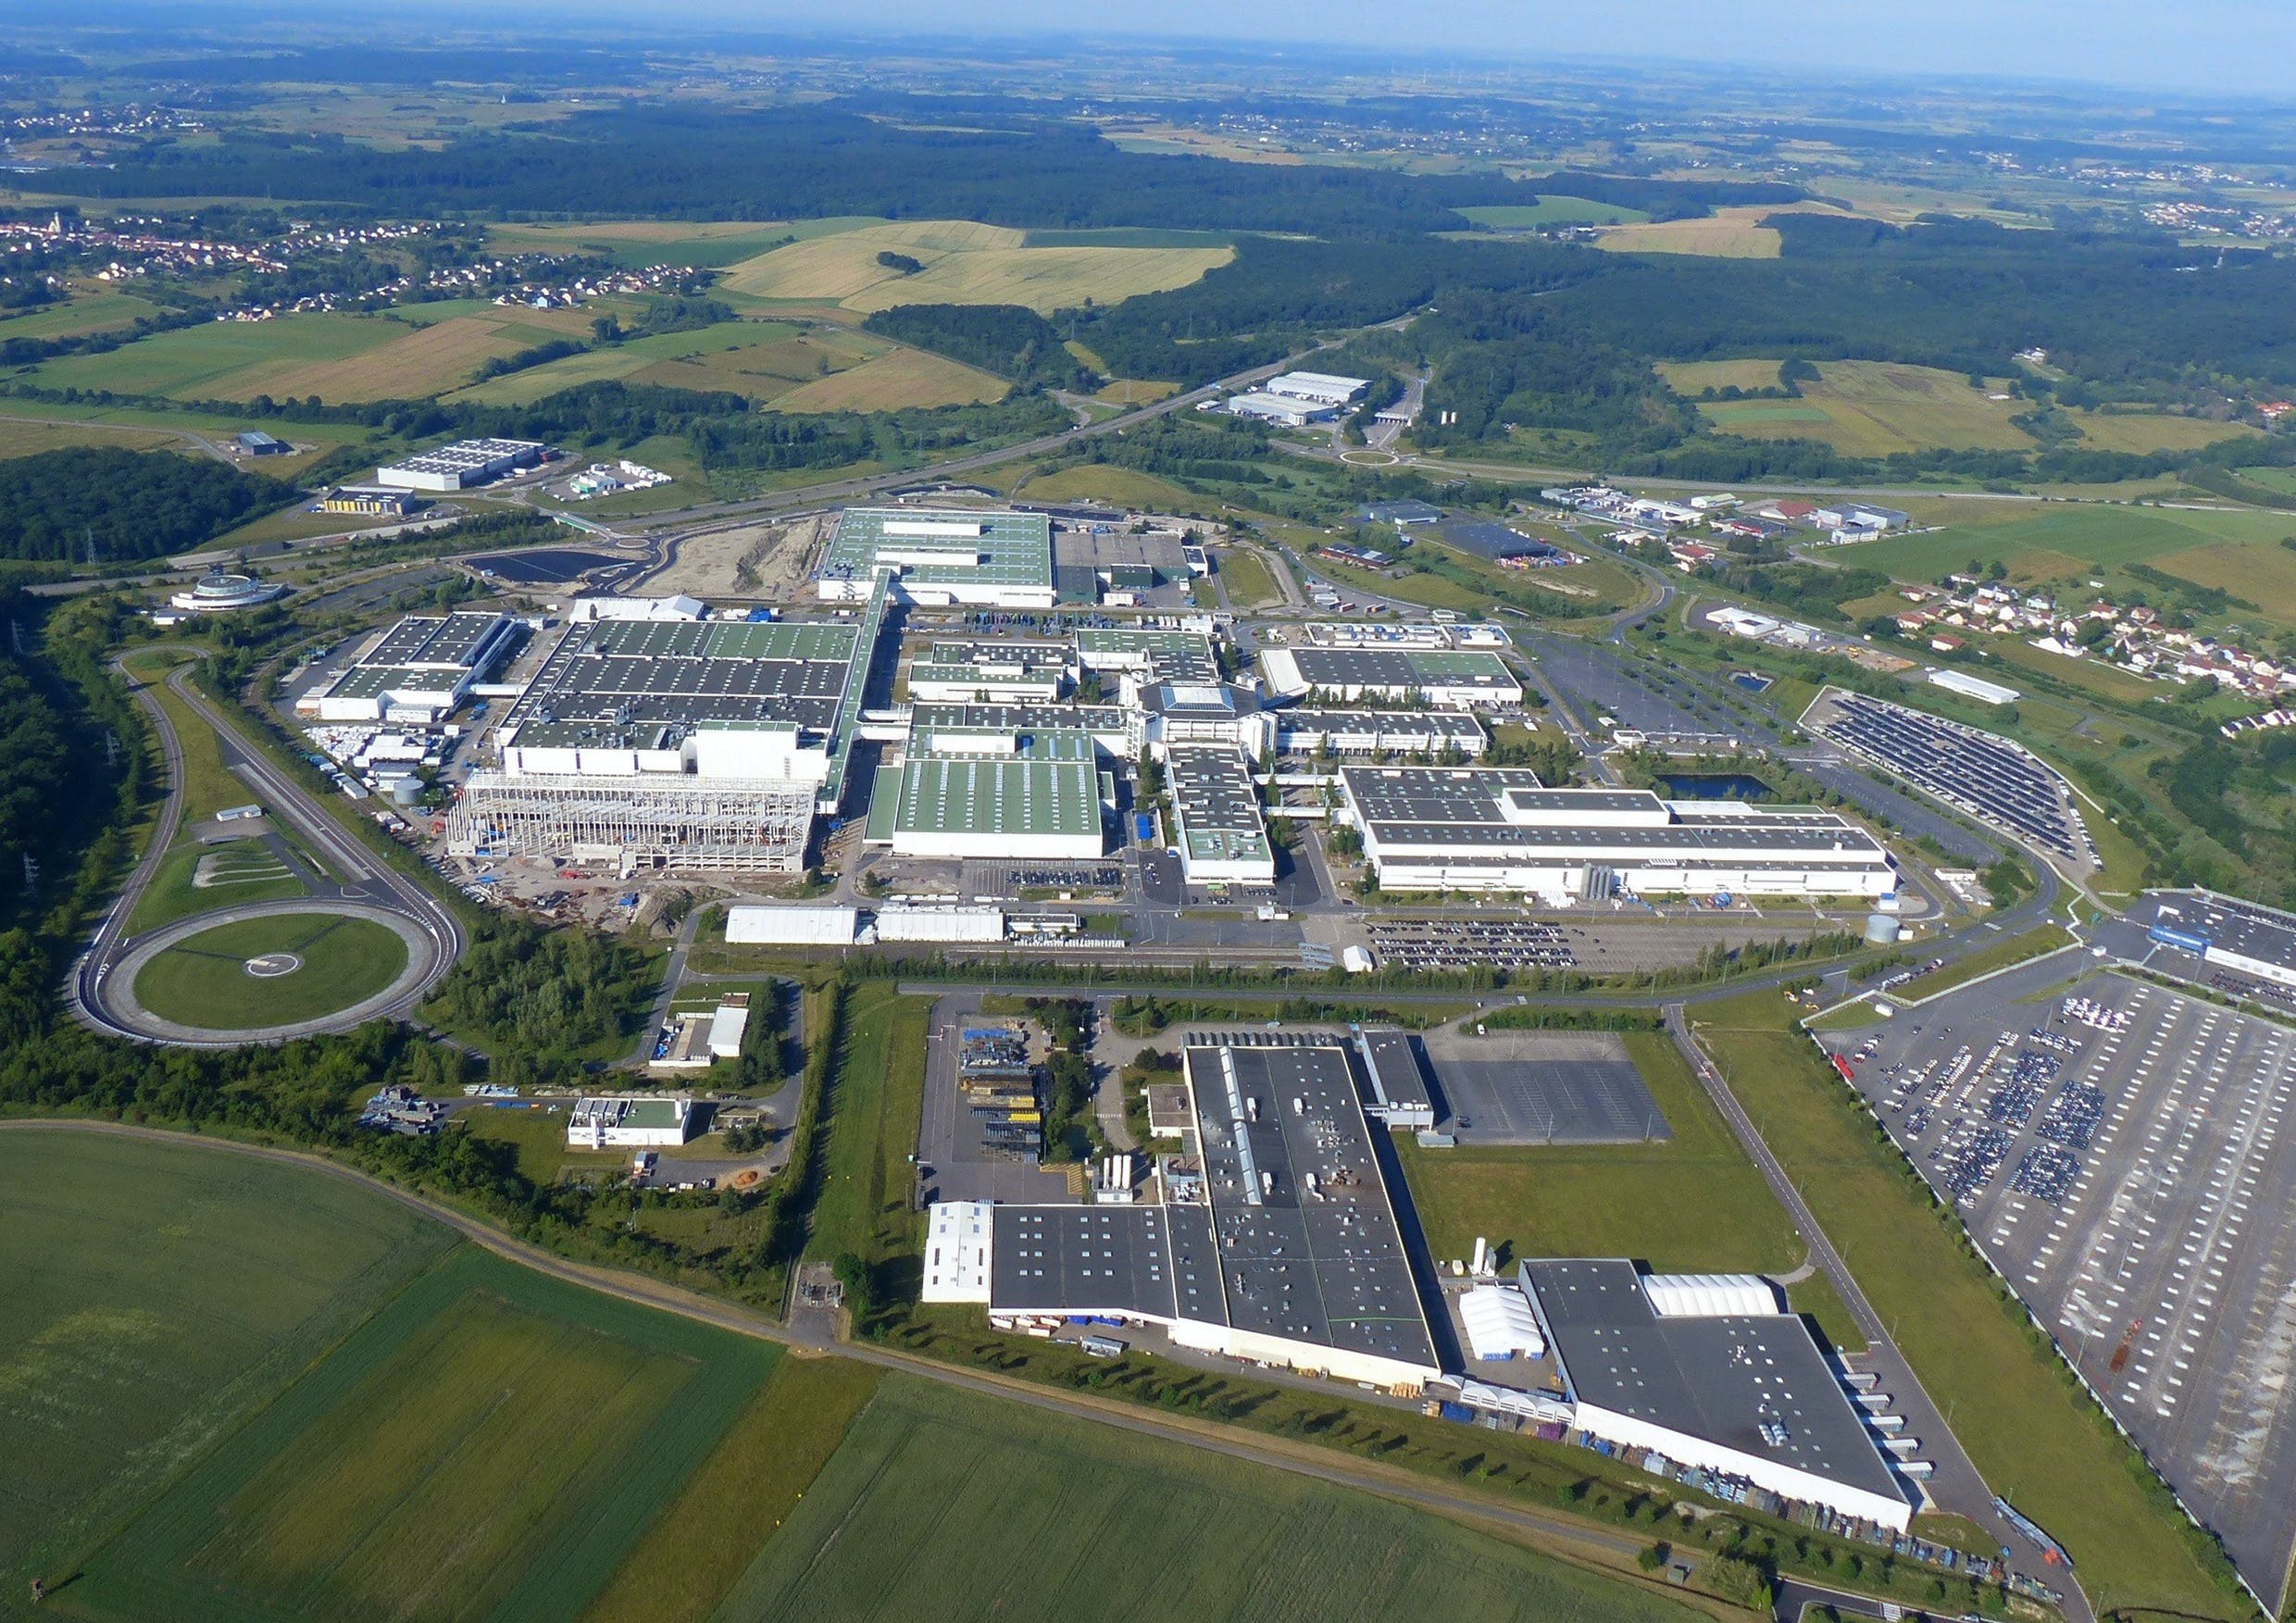 The former Mercedes-Benz site in Hambach will manufacture INEOS's uncompromising 4x4, the Grenadier